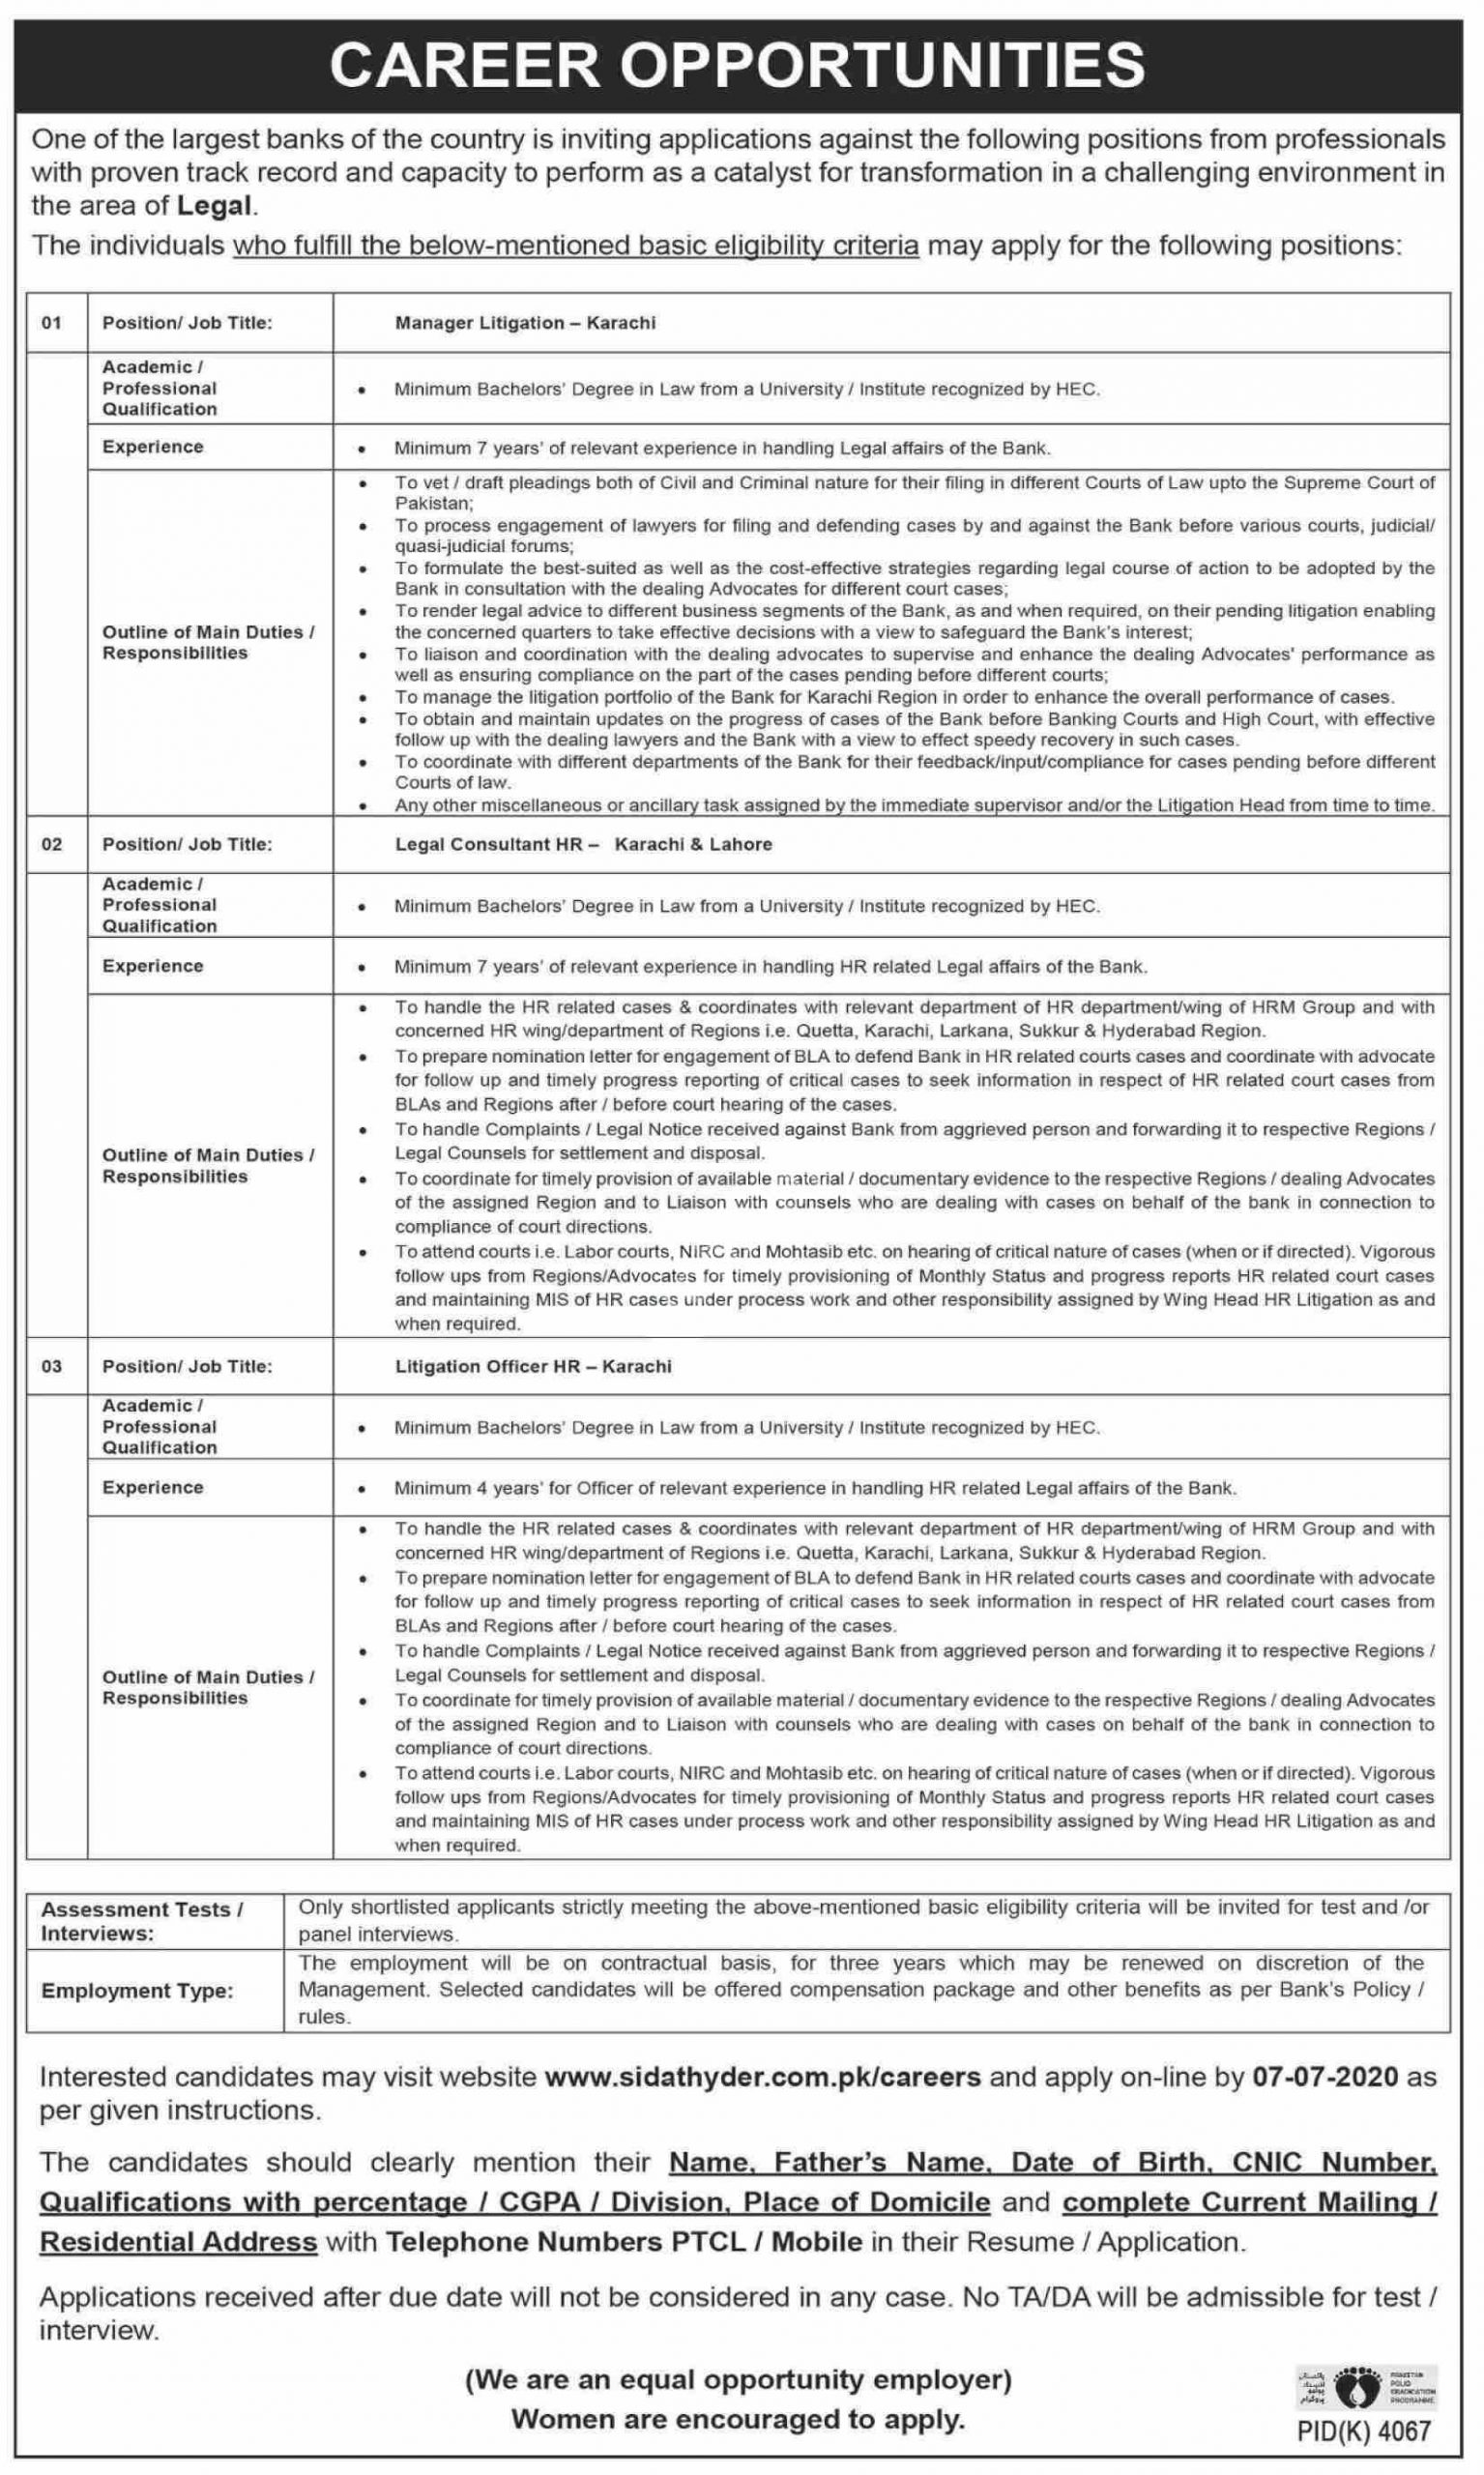 Sidat Hyder Morshed Associates Pvt Ltd Jobs July 2020